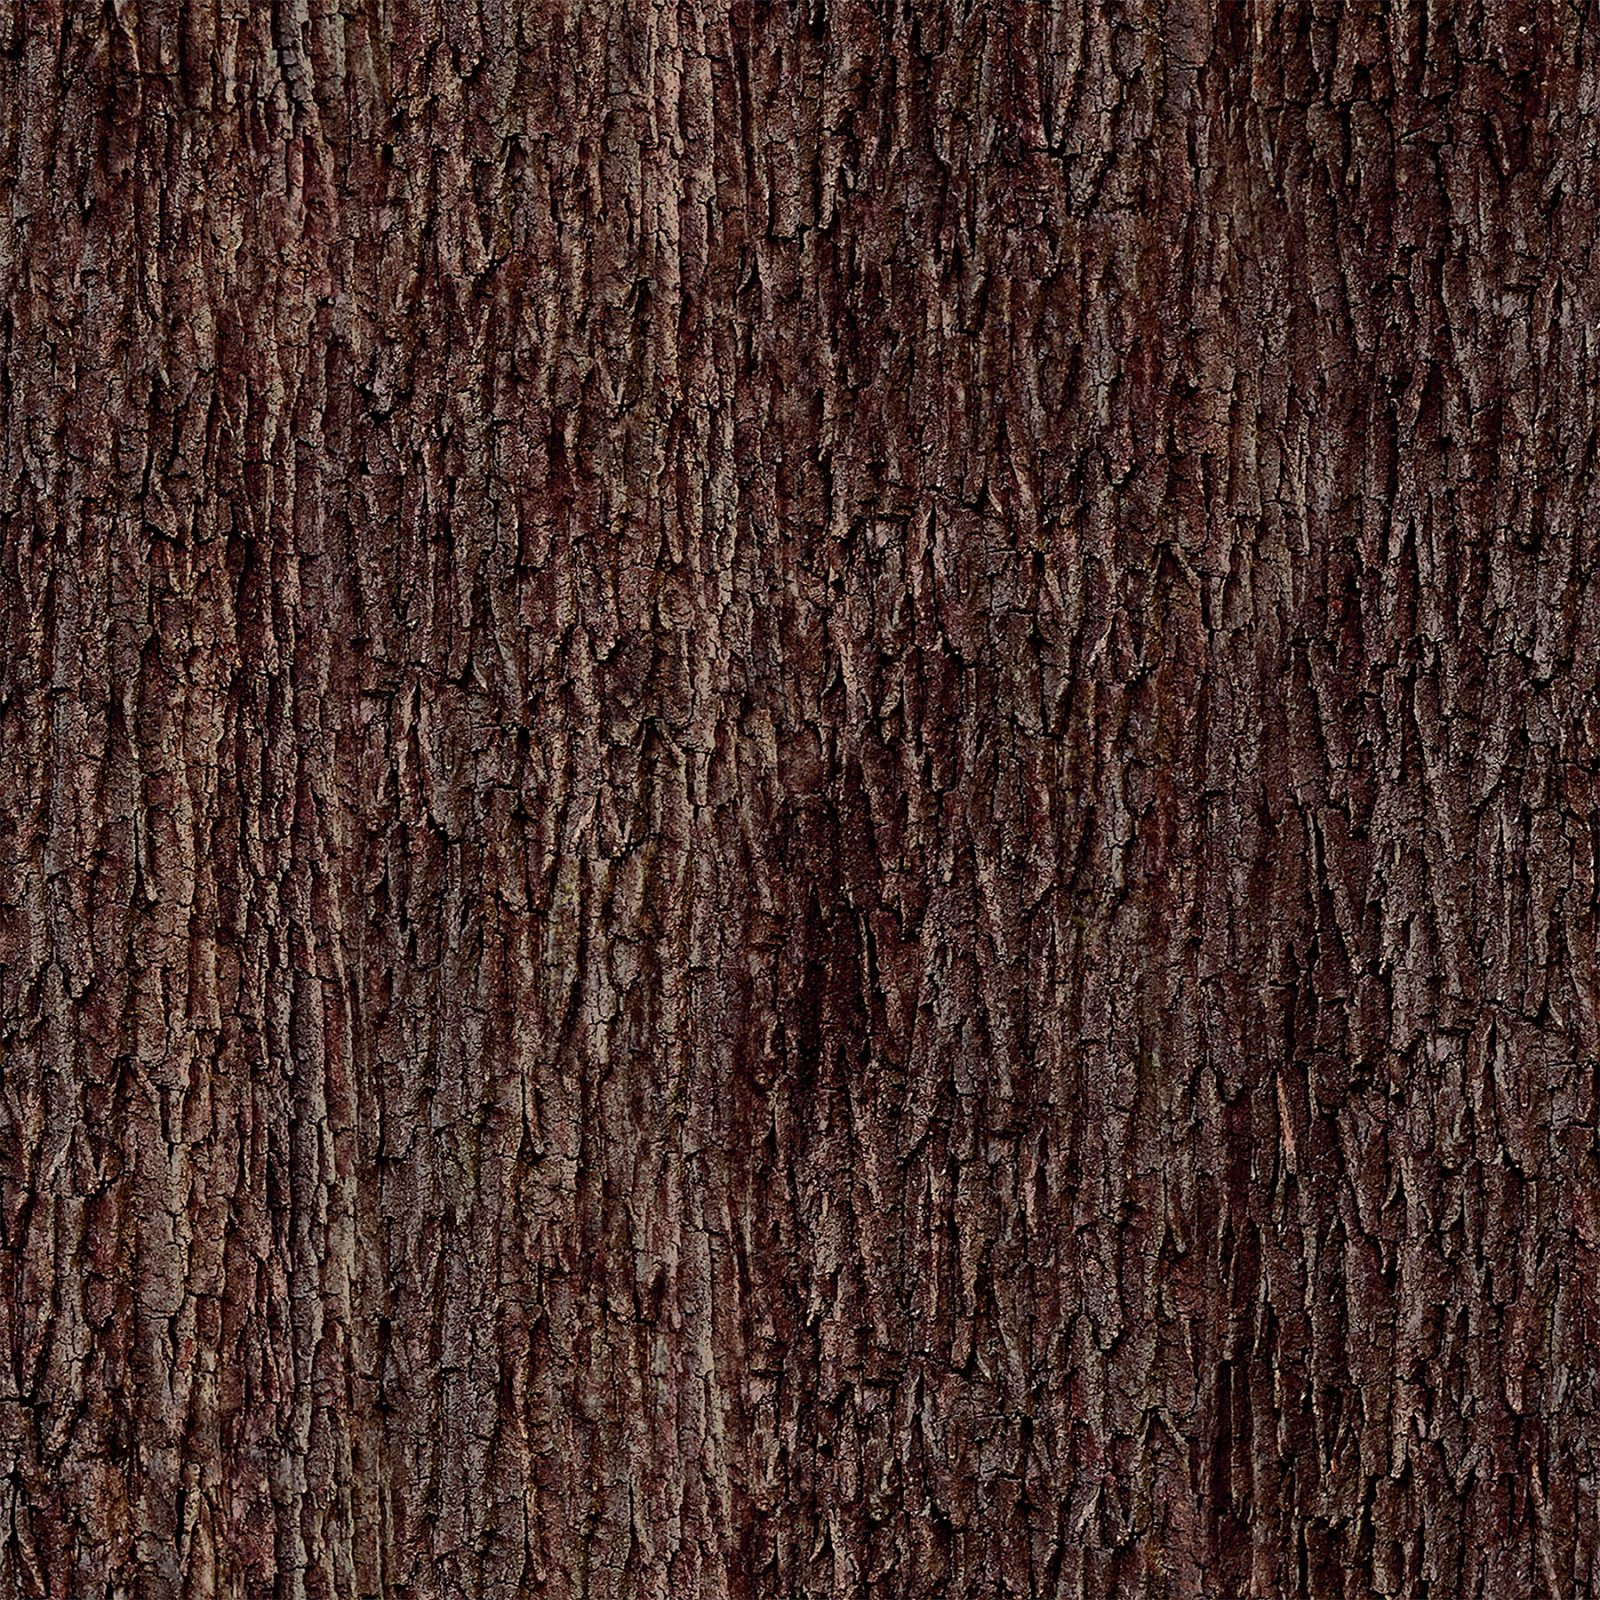 Northcott Naturescapes 21396-38 Red/Brown Bark